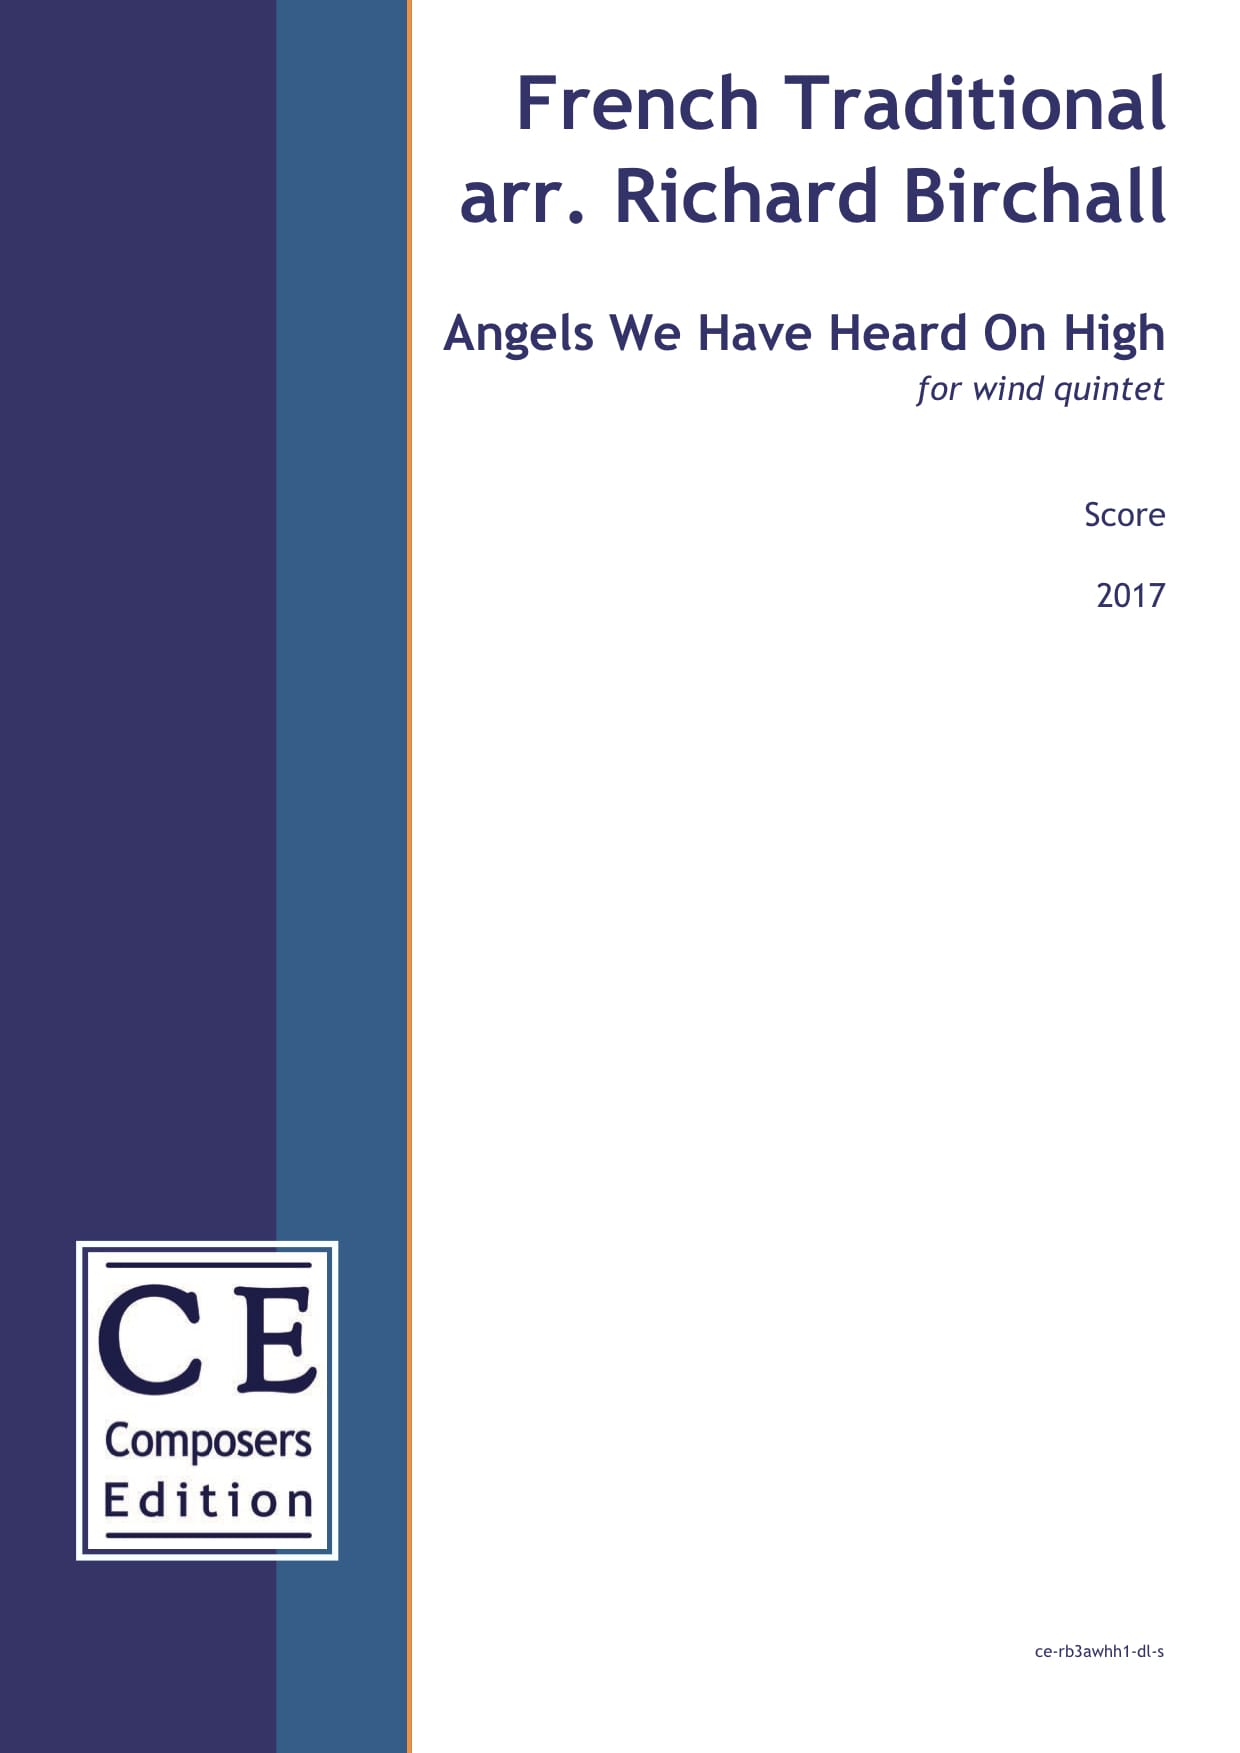 Trad. French arr. Richard Birchall: Angels We Have Heard On High arranged for wind quintet